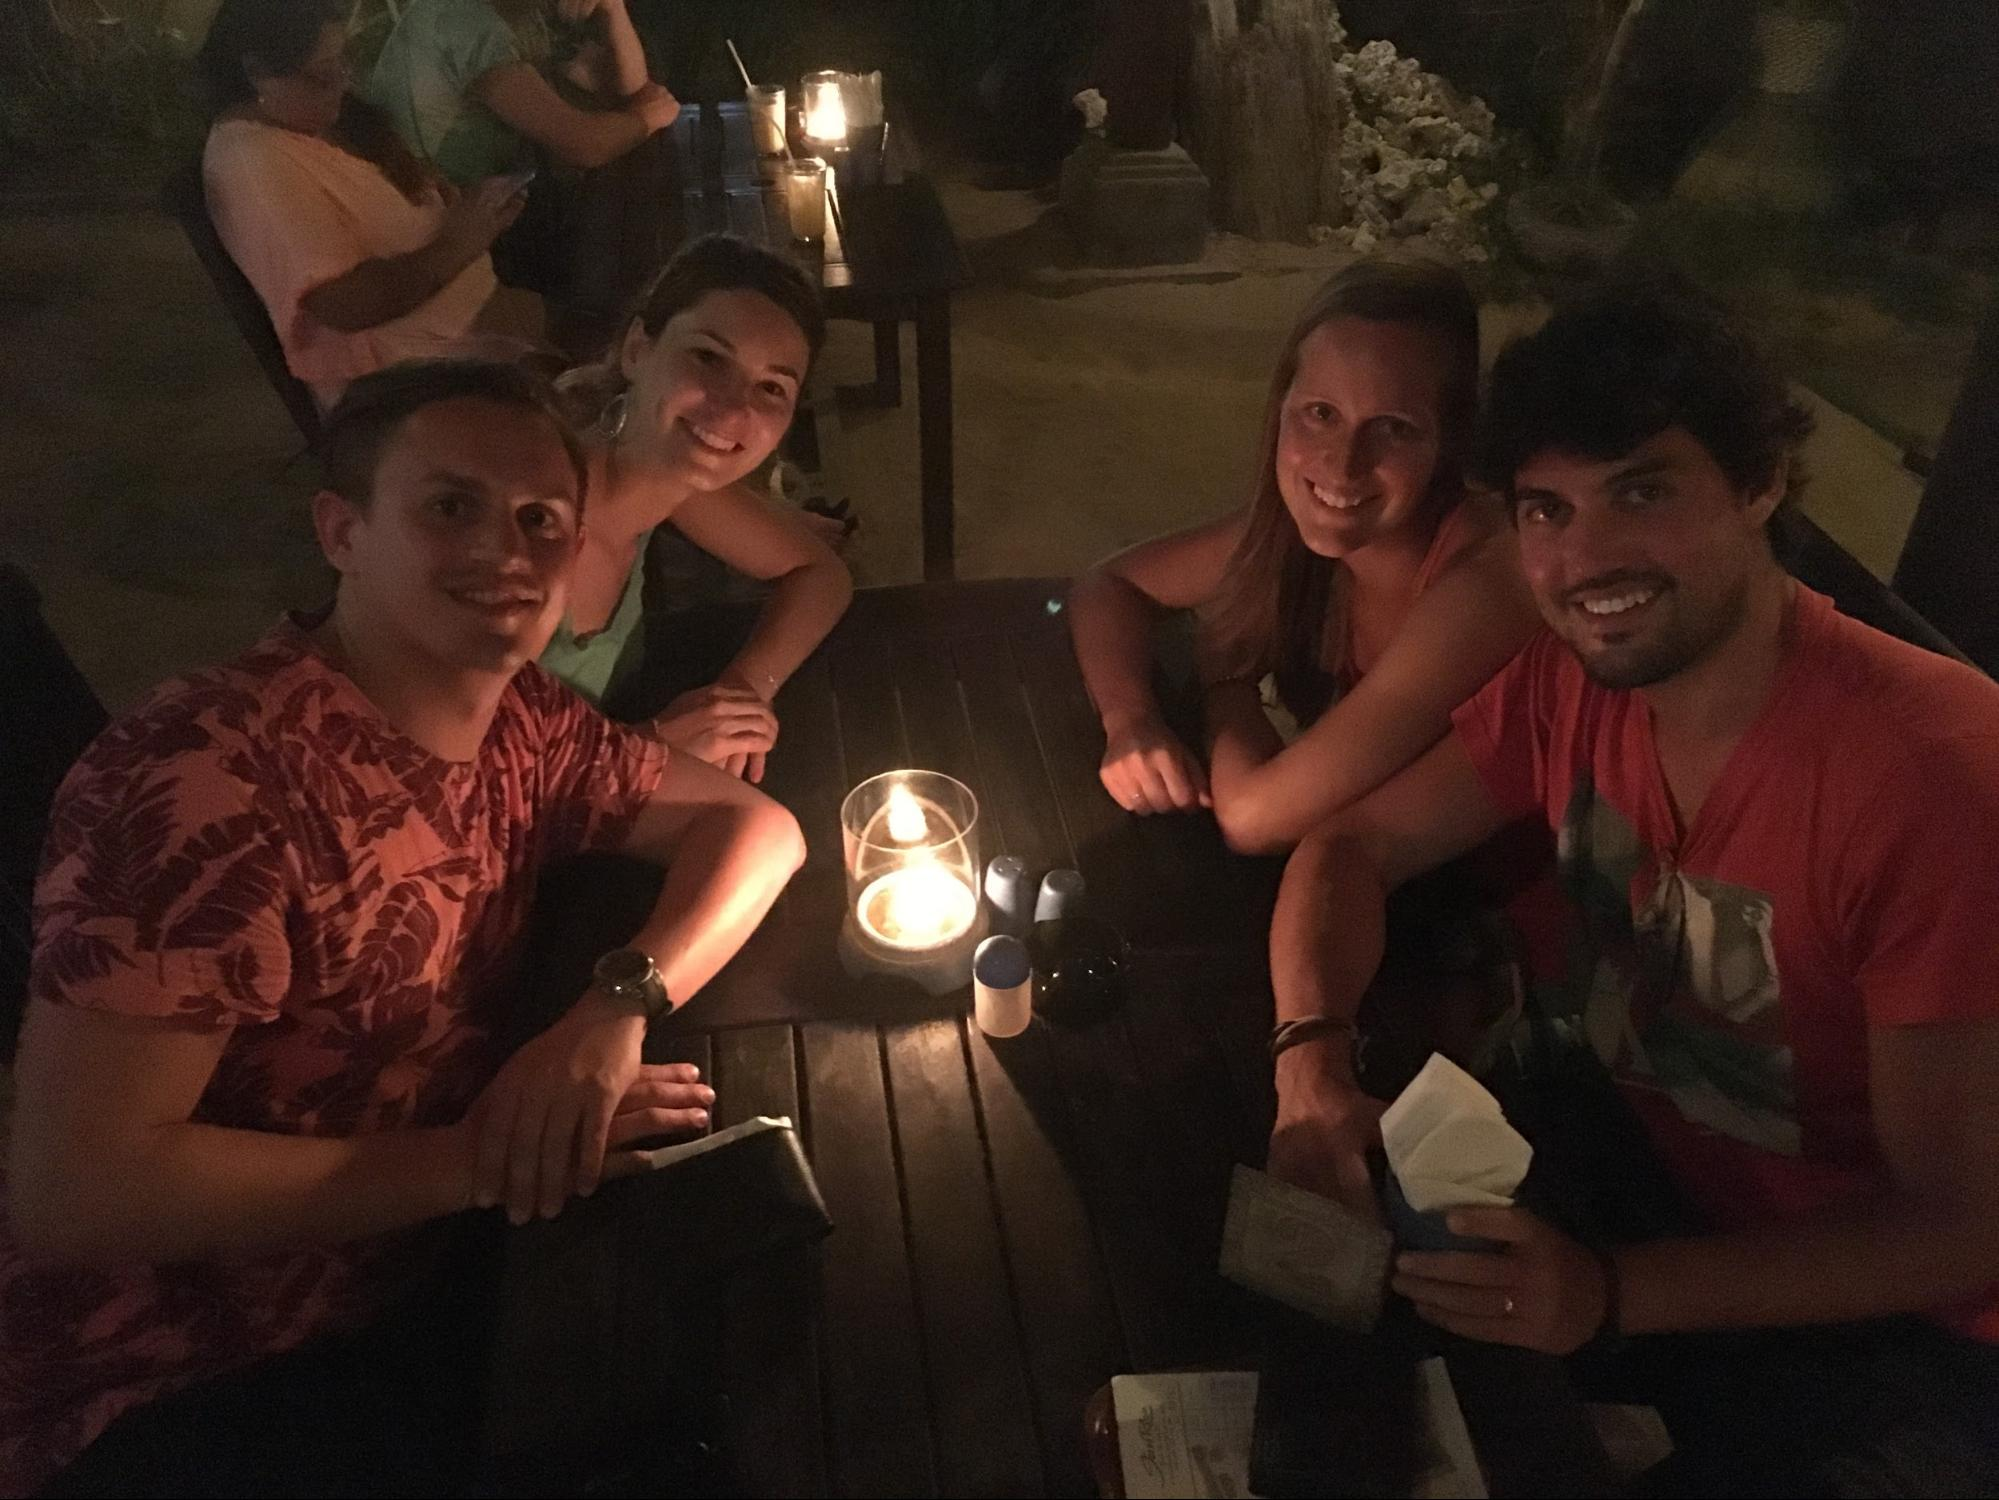 Aurelia from Medtronic and her partner (left) sharing dinner and drinks in Bali with my wife and me